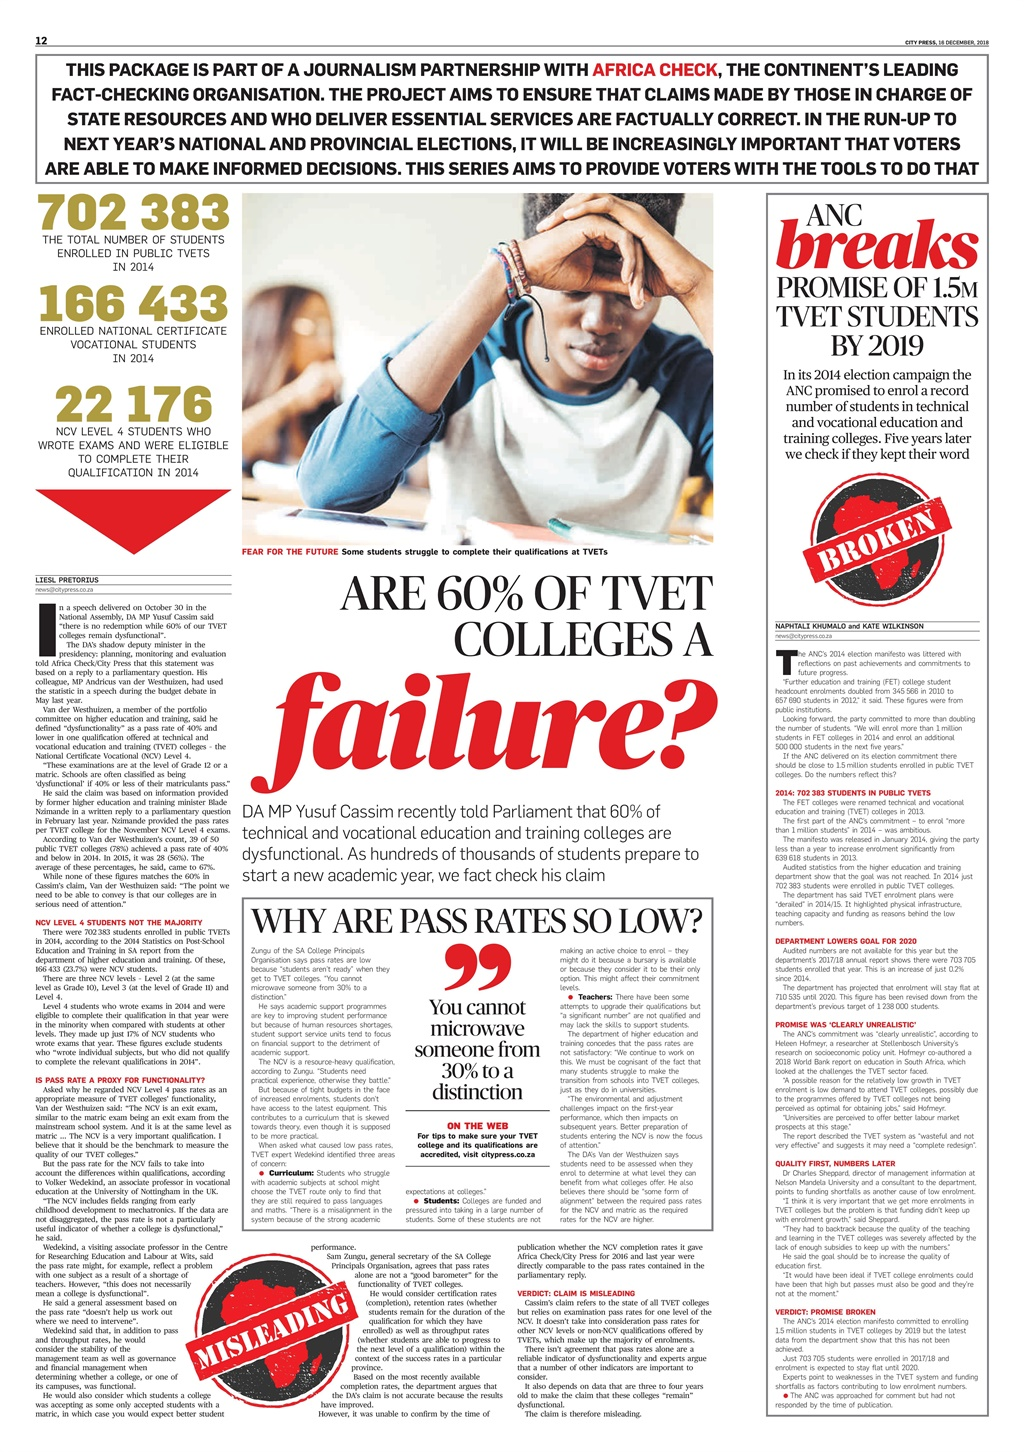 On December 16 2018, City Press published a special report on TVET colleges.